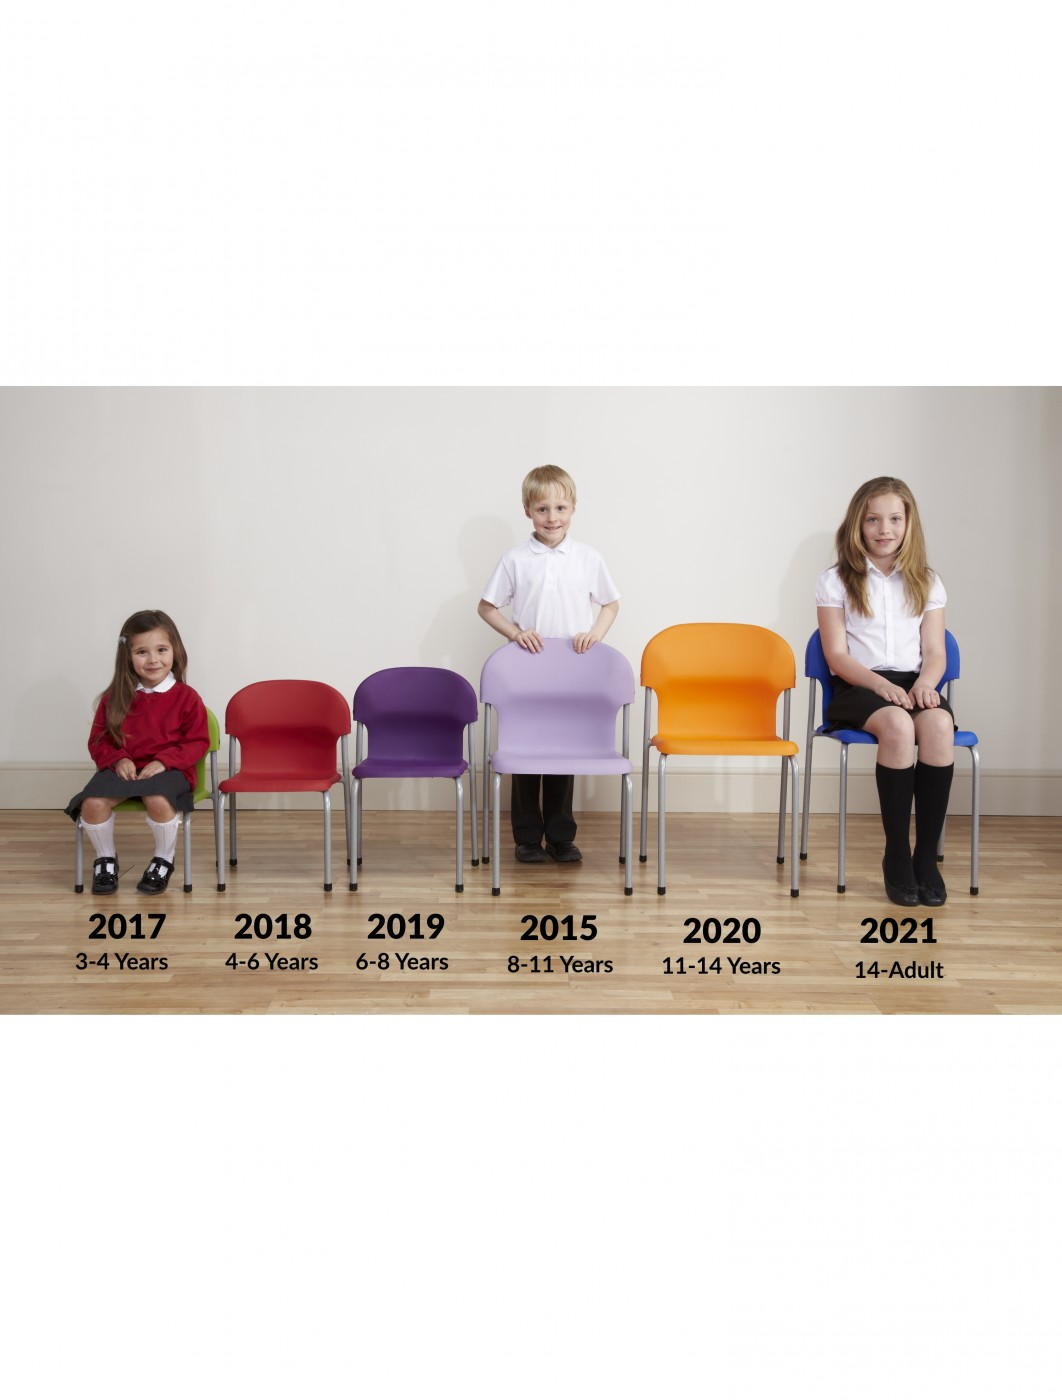 Metalliform Chair 2000 Chairs - Age 11-14 Years Polypropylene Classroom Chairs 2020